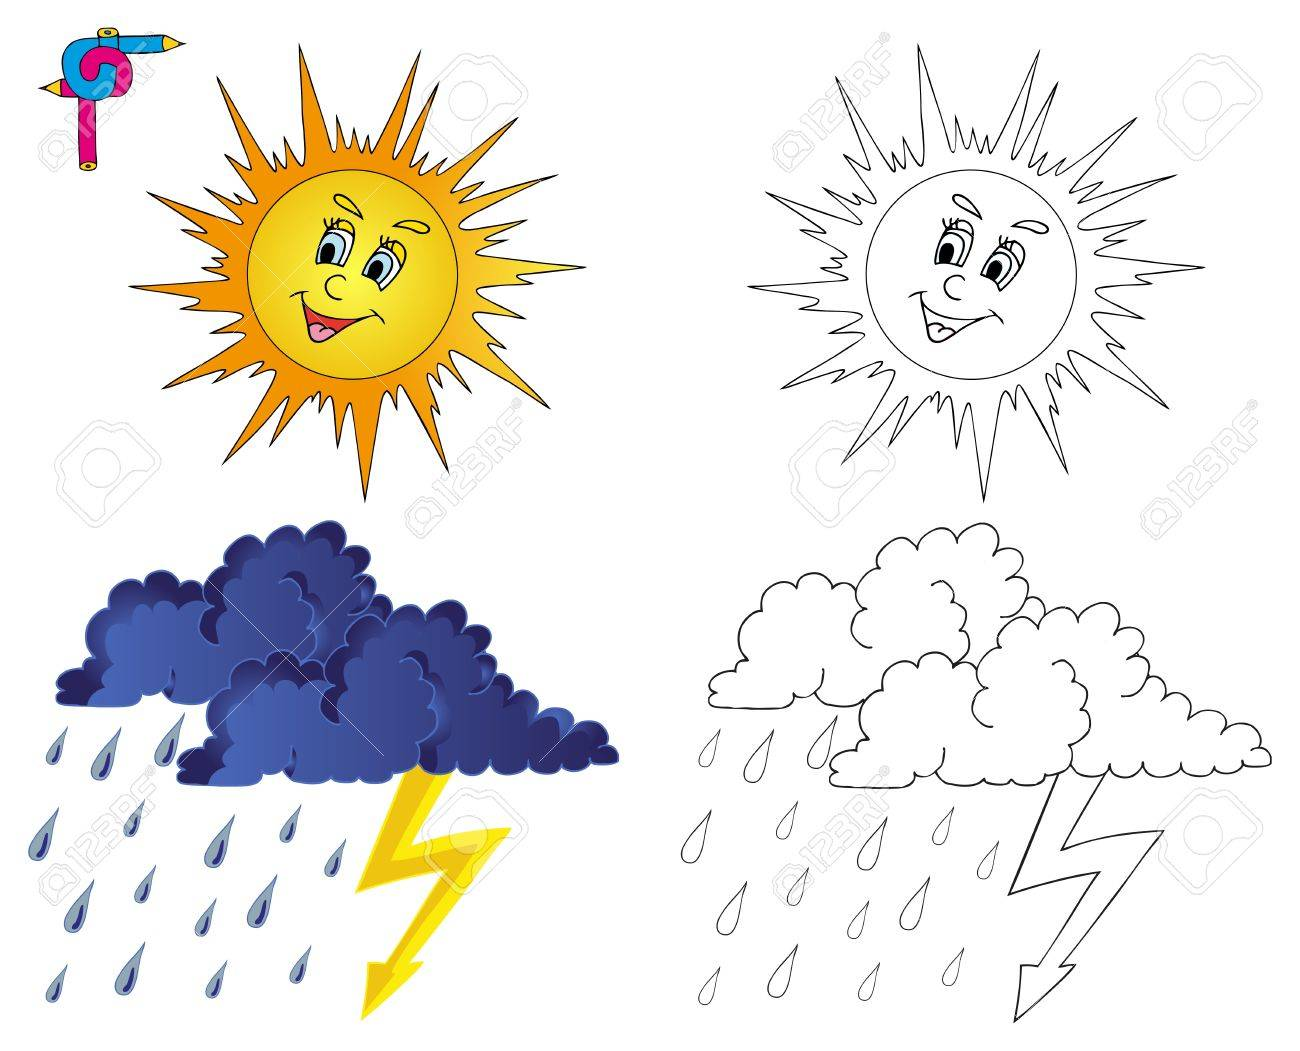 Coloring image weather 3 - vector illustration Stock Vector - 21014512